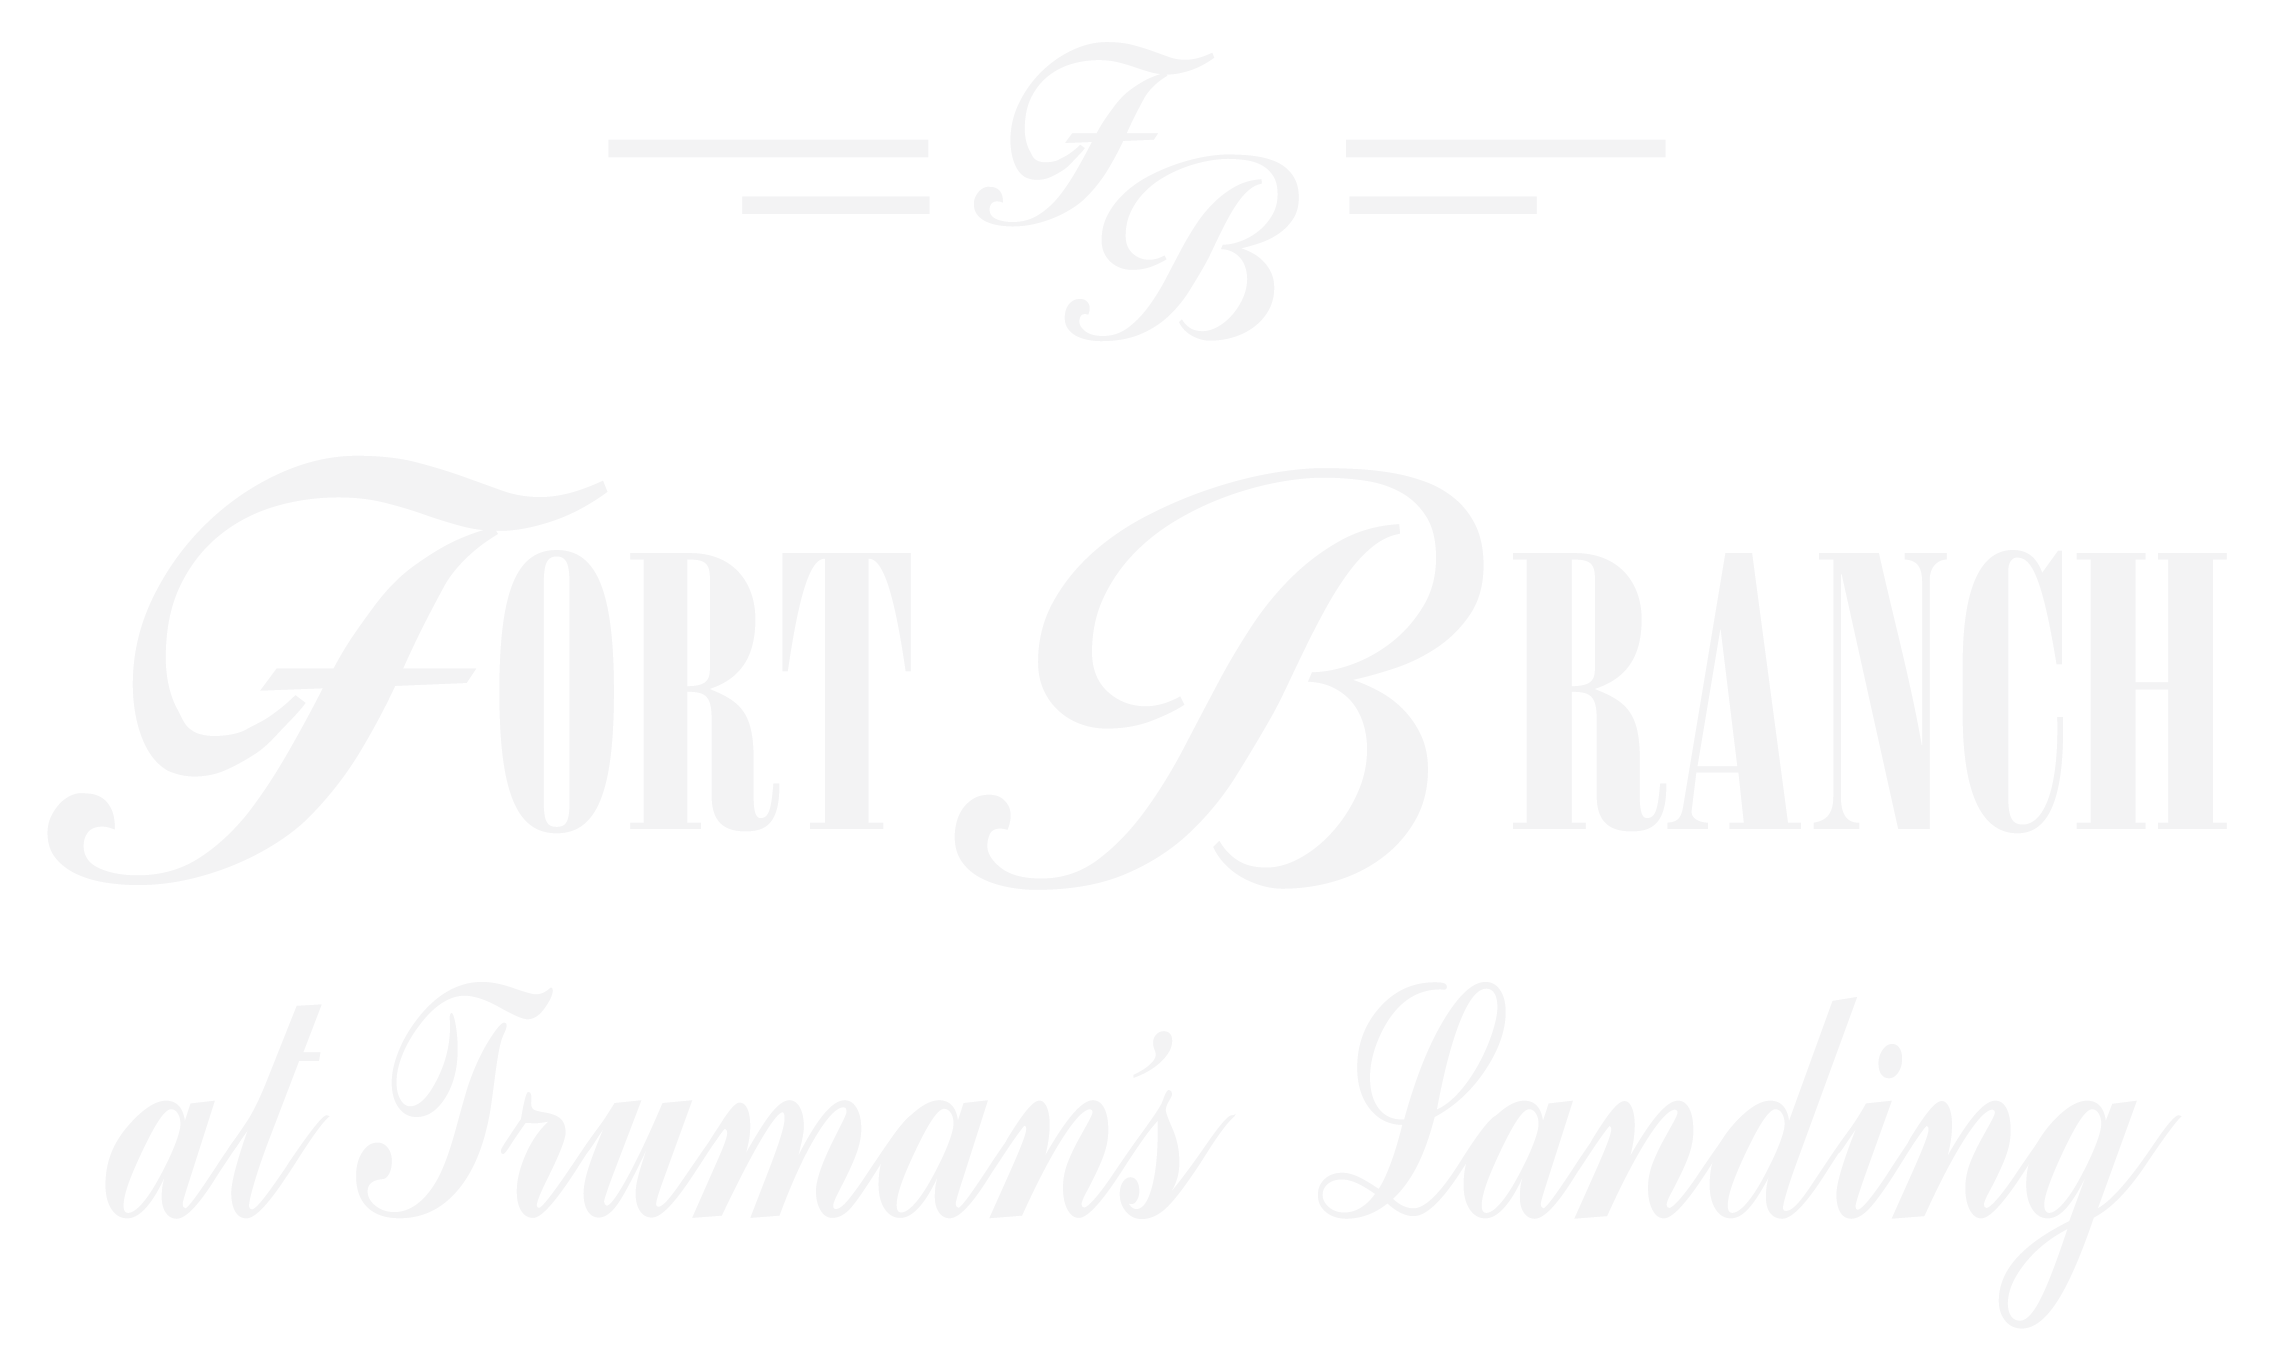 Fort Branch at Truman's Landing